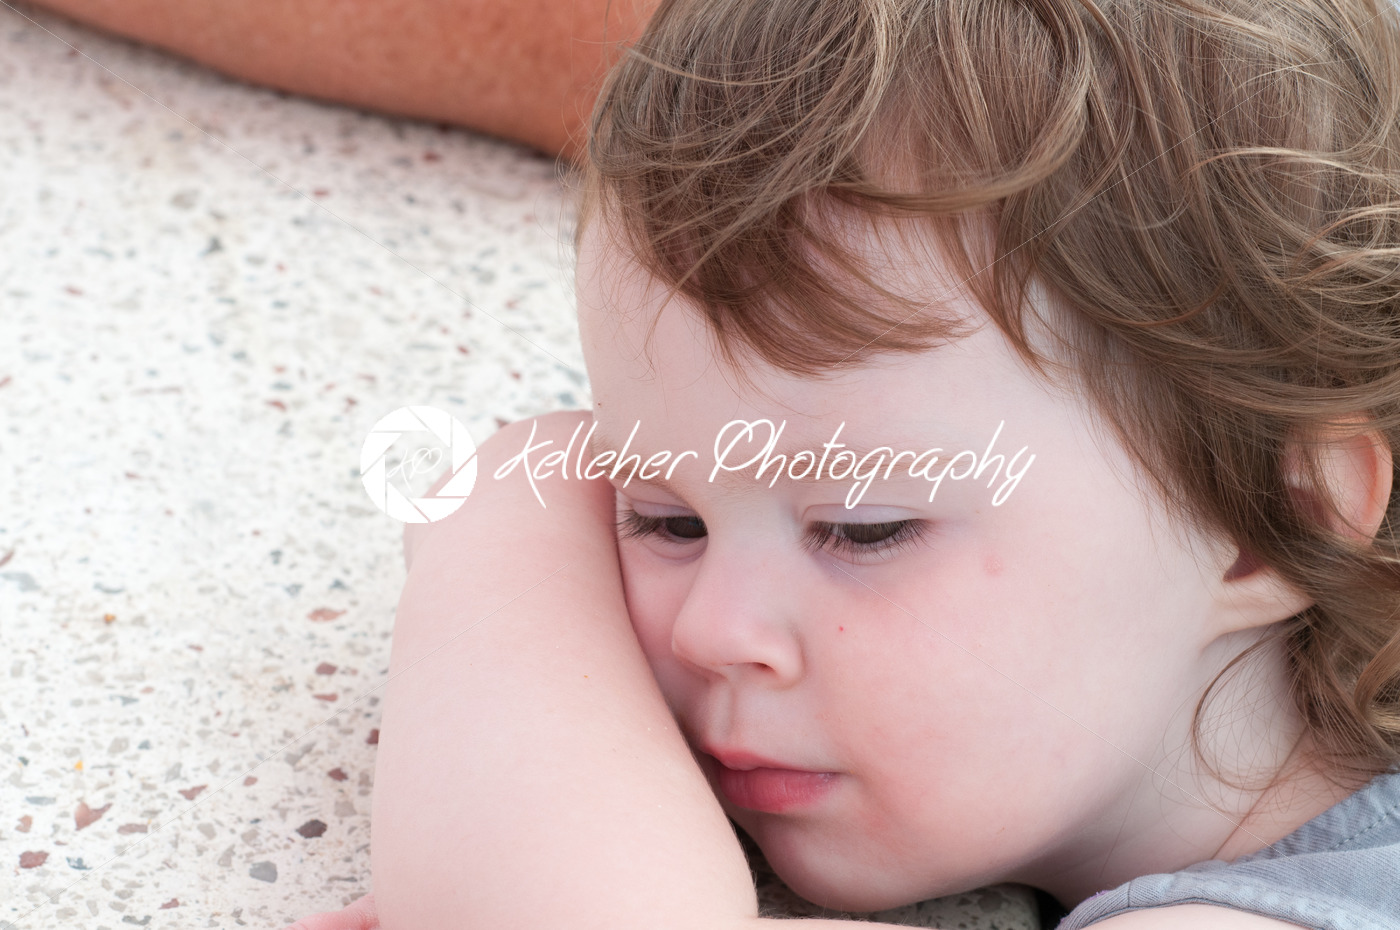 Cute young toddler girl falling asleep resting her head on table - Kelleher Photography Store